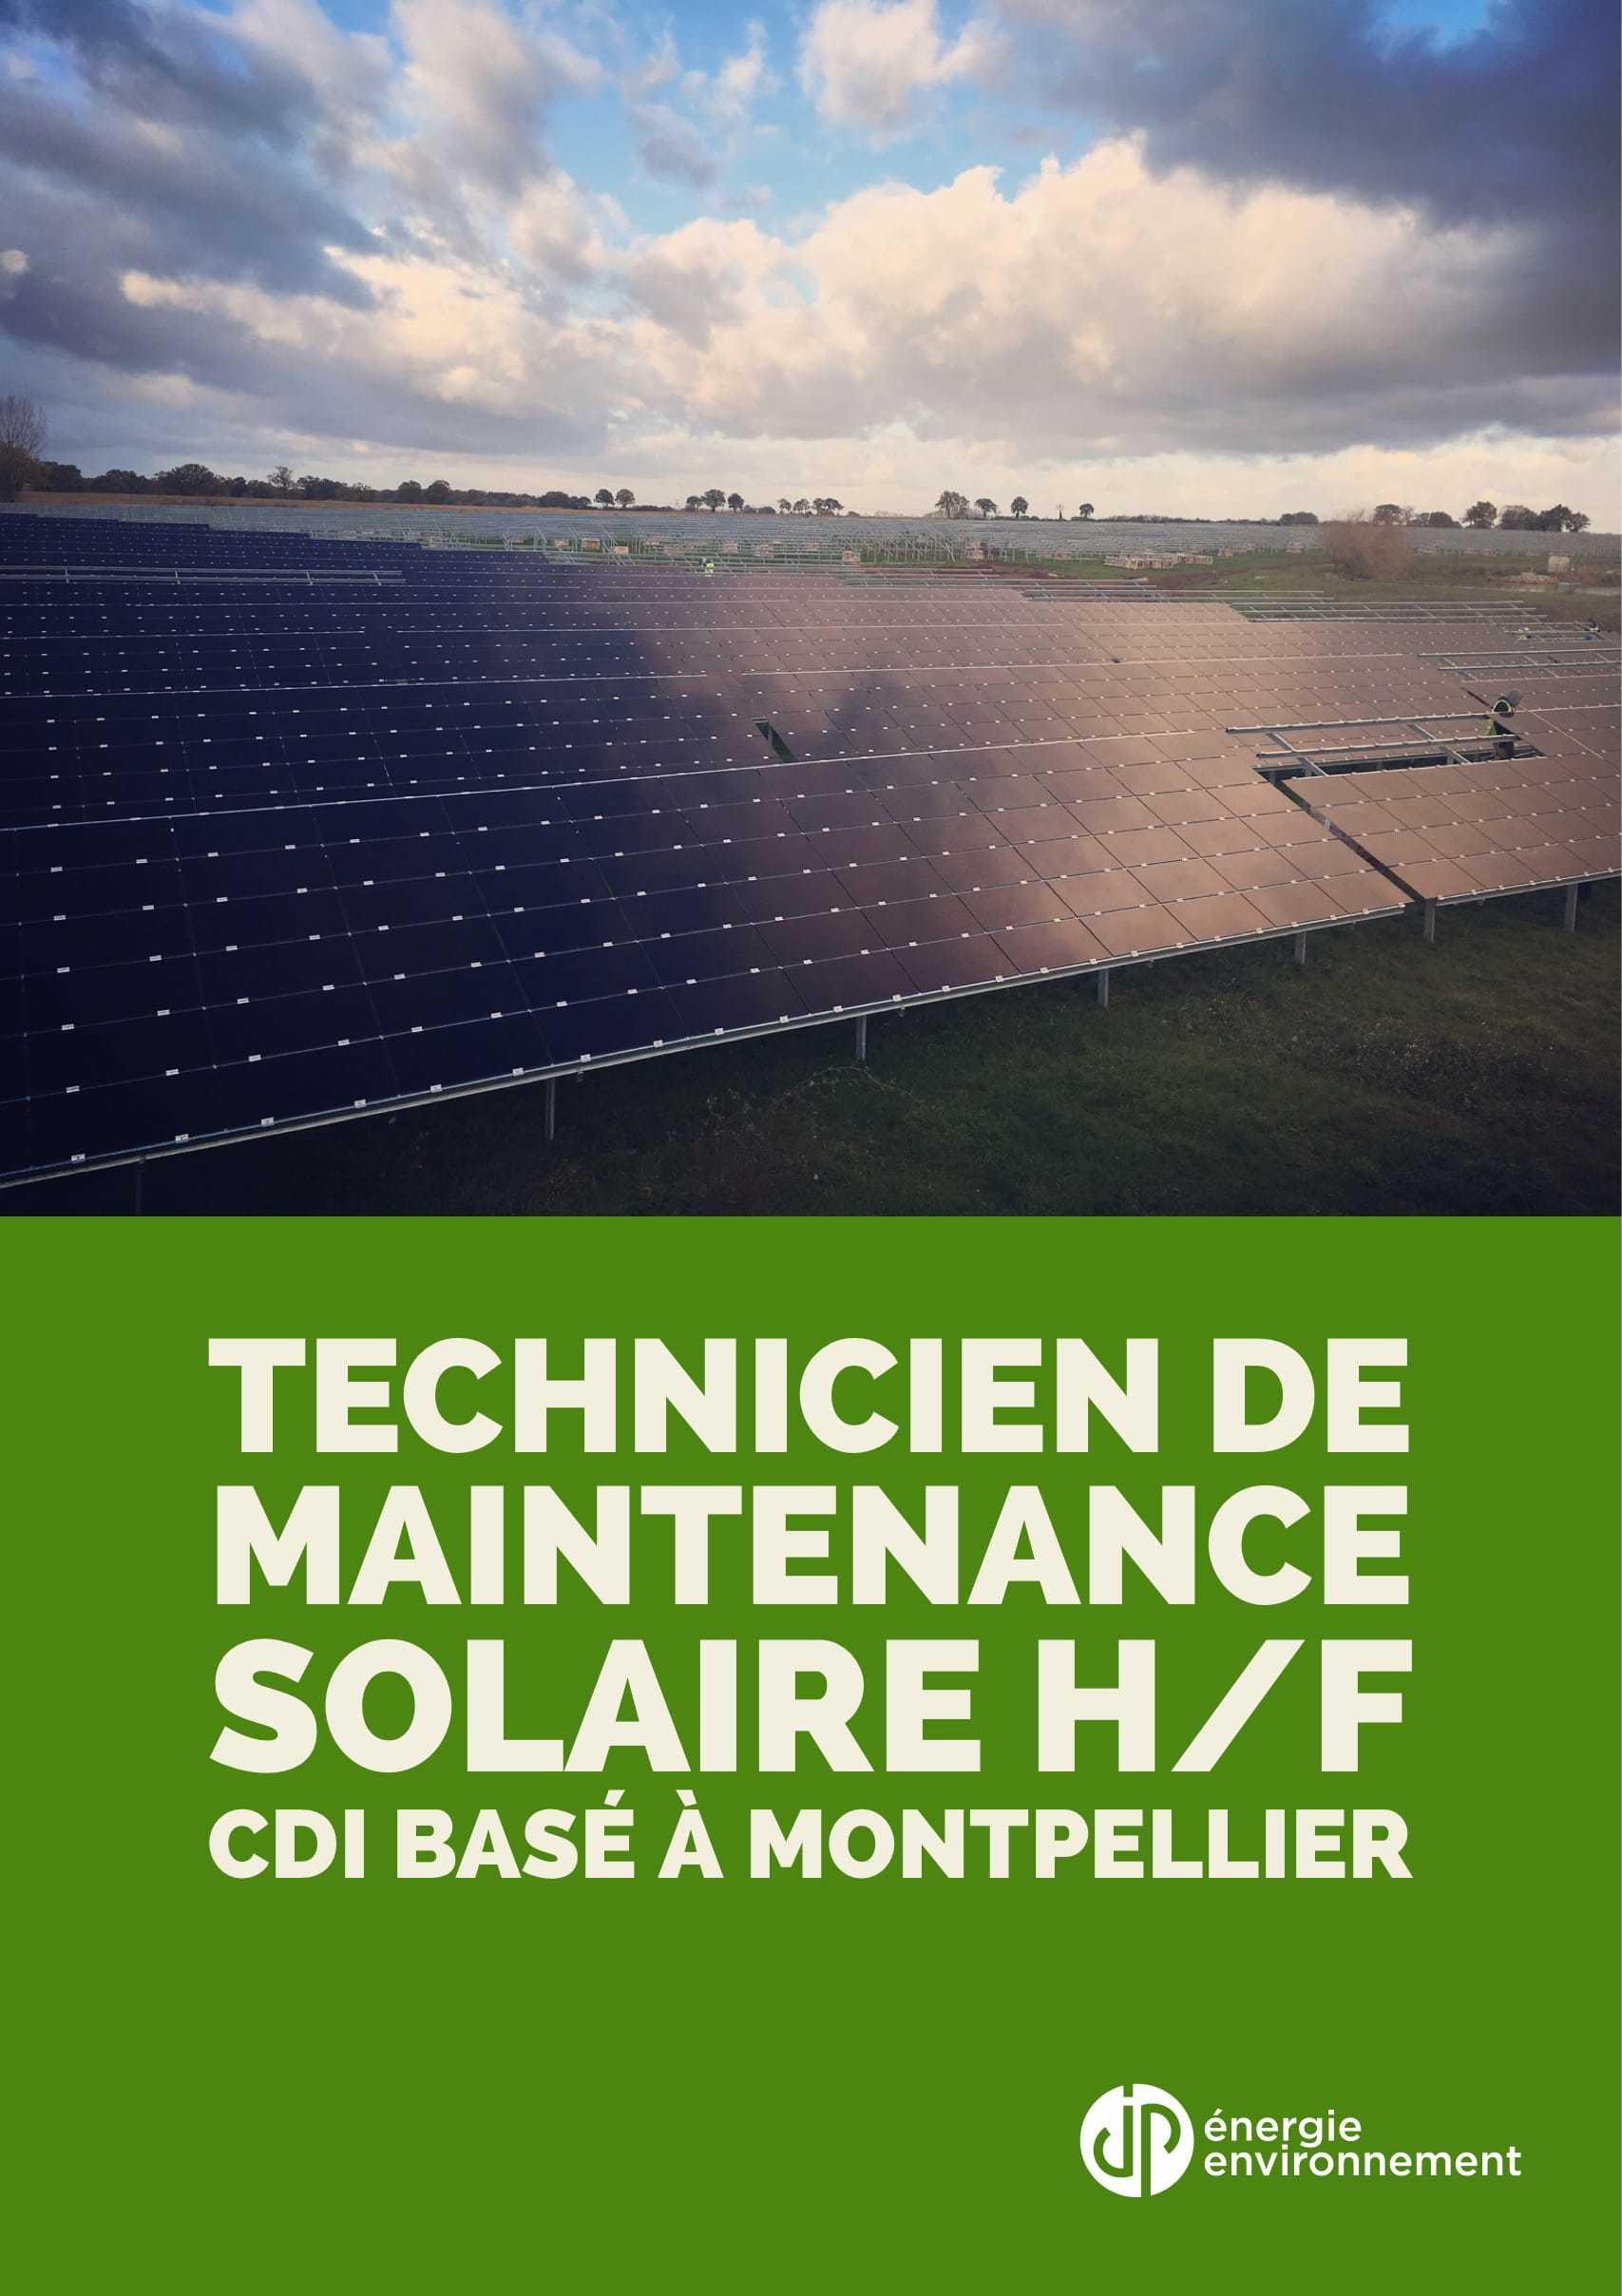 [JOB] CDI -Technicien de maintenance solaire H/F Montpellier